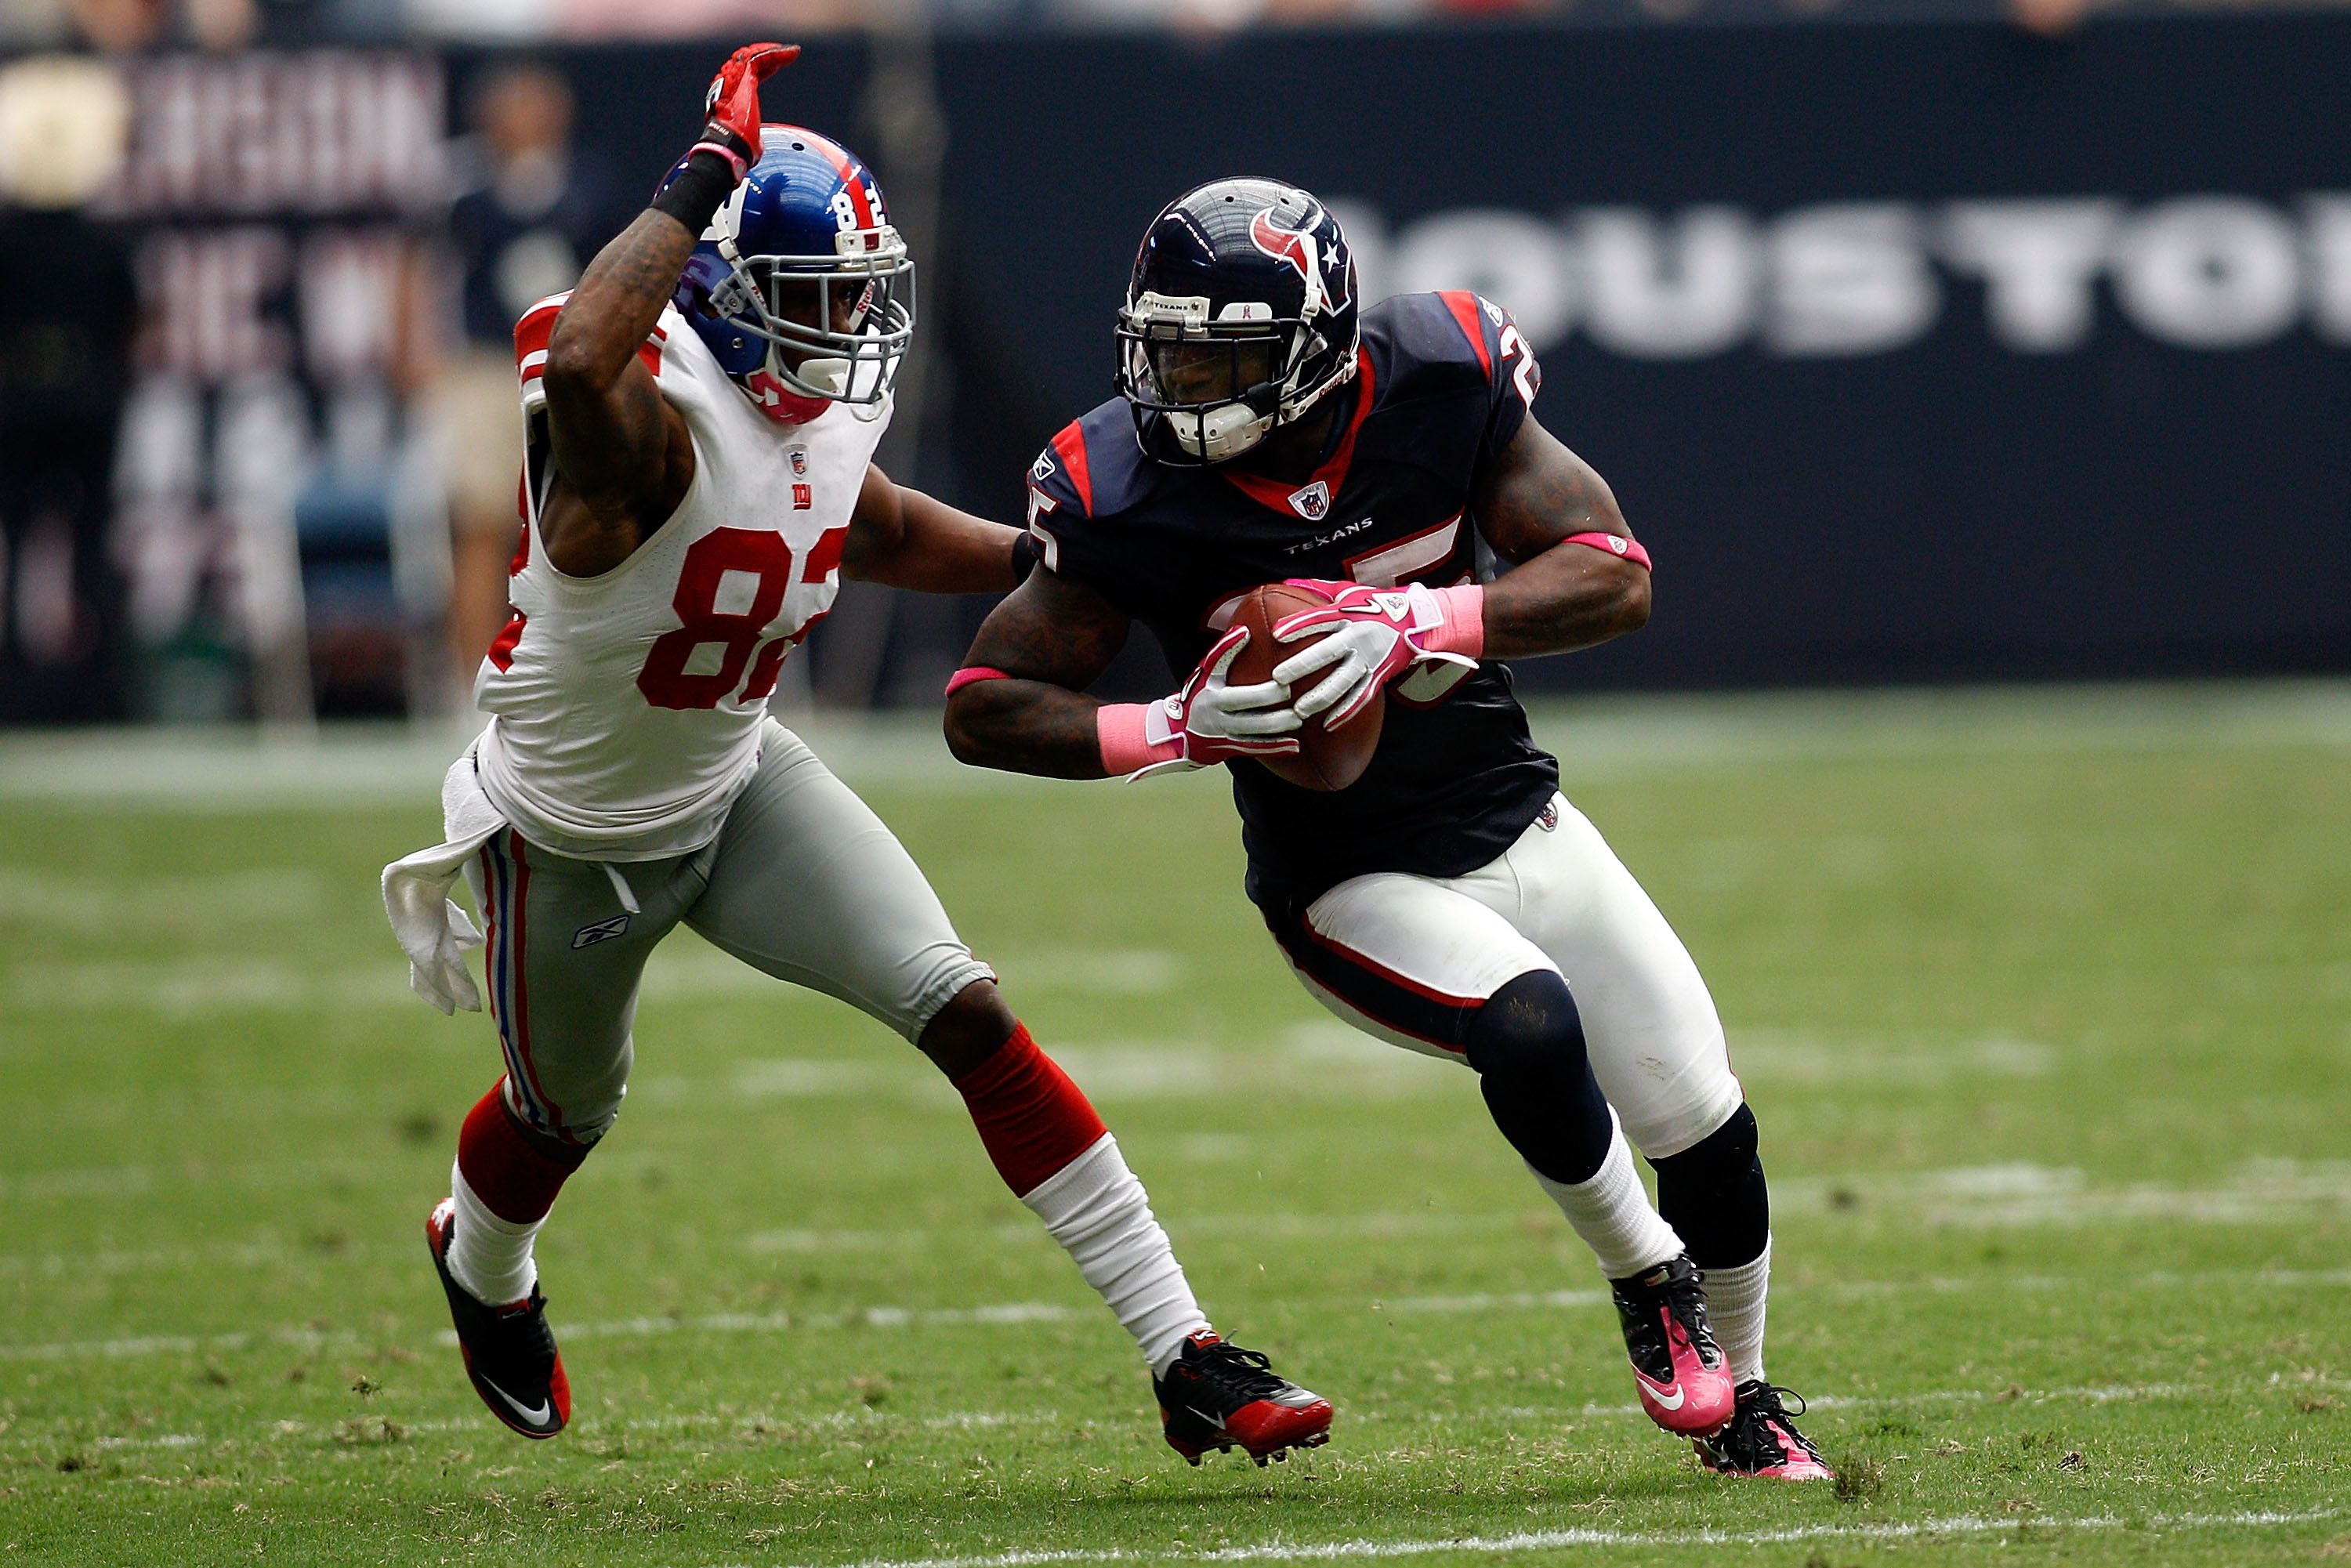 HOUSTON - OCTOBER 10:  Kareem Jackson #25 of the Houston Texans avoids a tackle after intercepting a pass  by Mario Manningham #82 of the New York Giants at Reliant Stadium on October 10, 2010 in Houston, Texas.  The Giants defeated the Texans 34-10.  (Ph